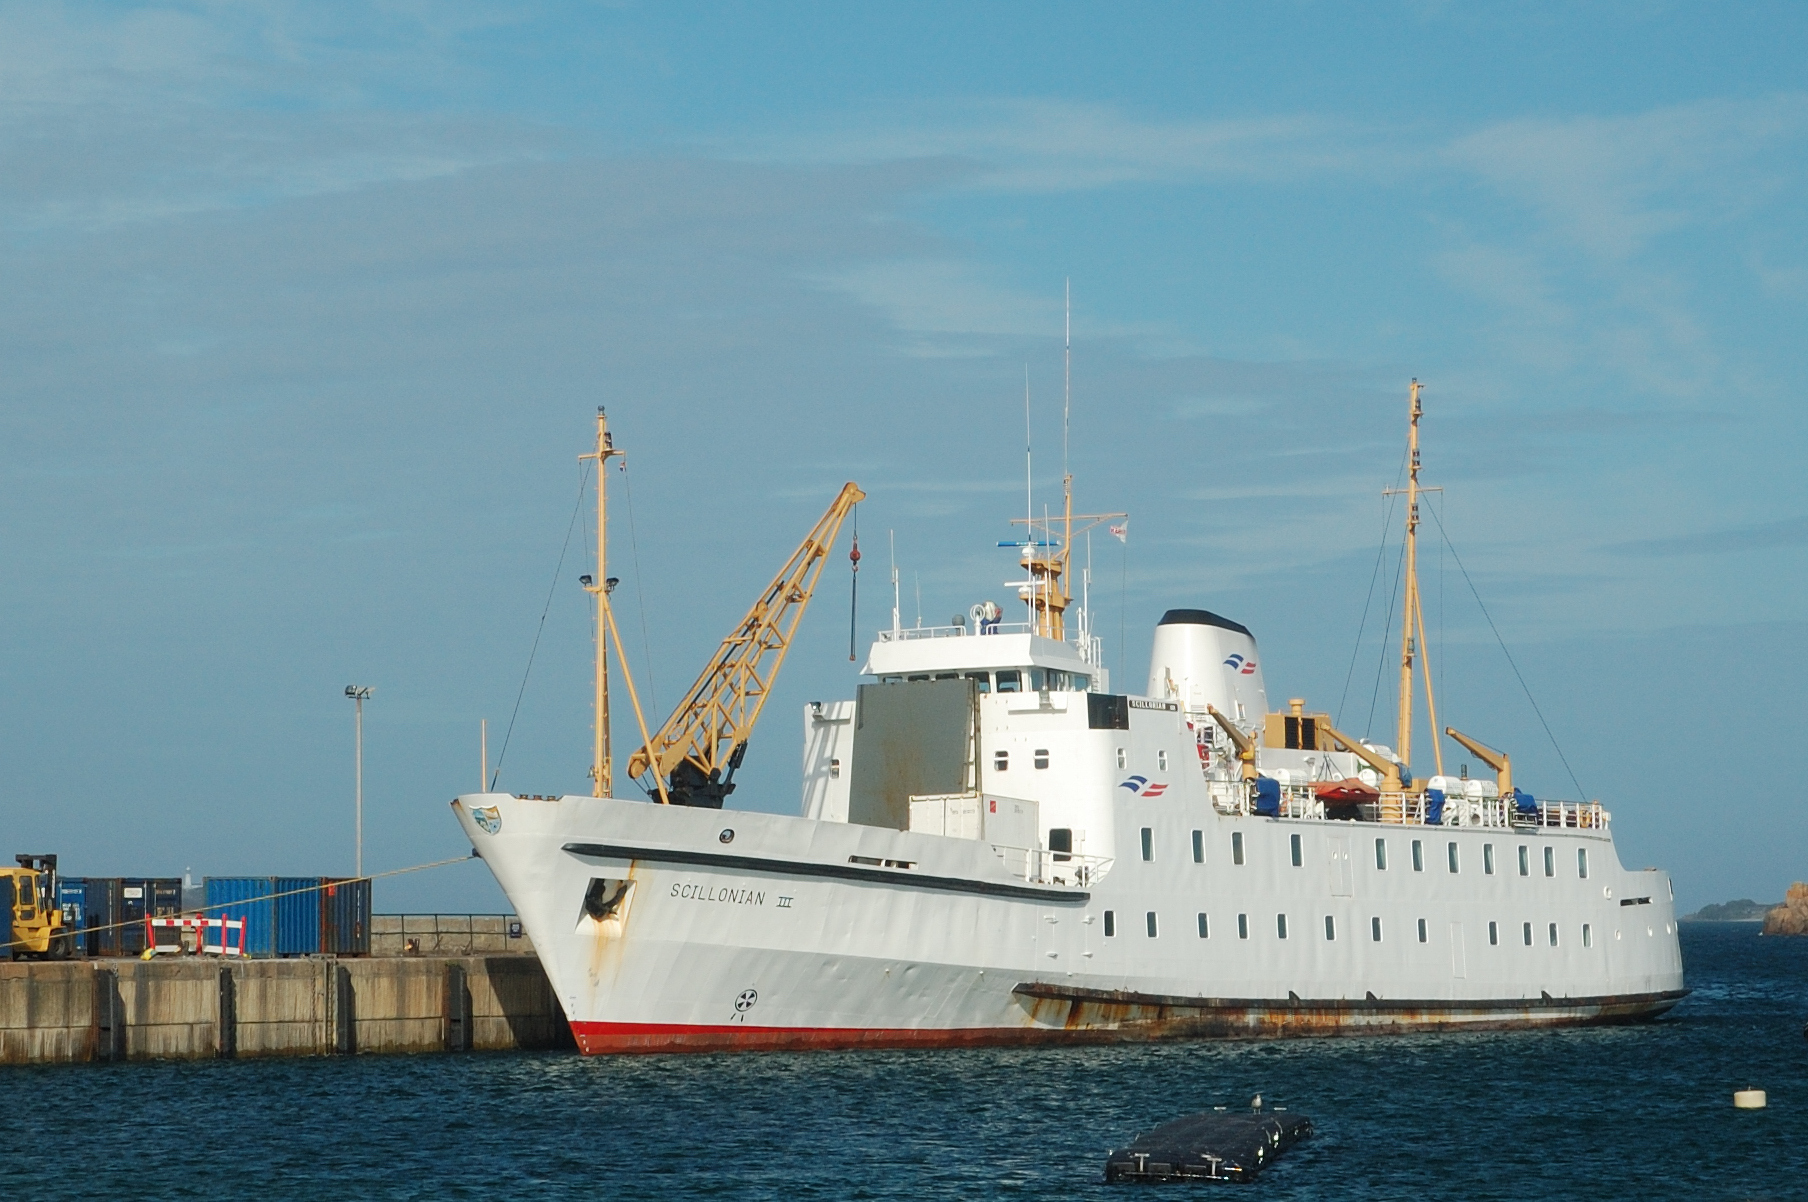 The Scillonian III is suffering an electrical fault and currently unable to sail. (Photo from stock: Austin Donnelly/Wikipedia)